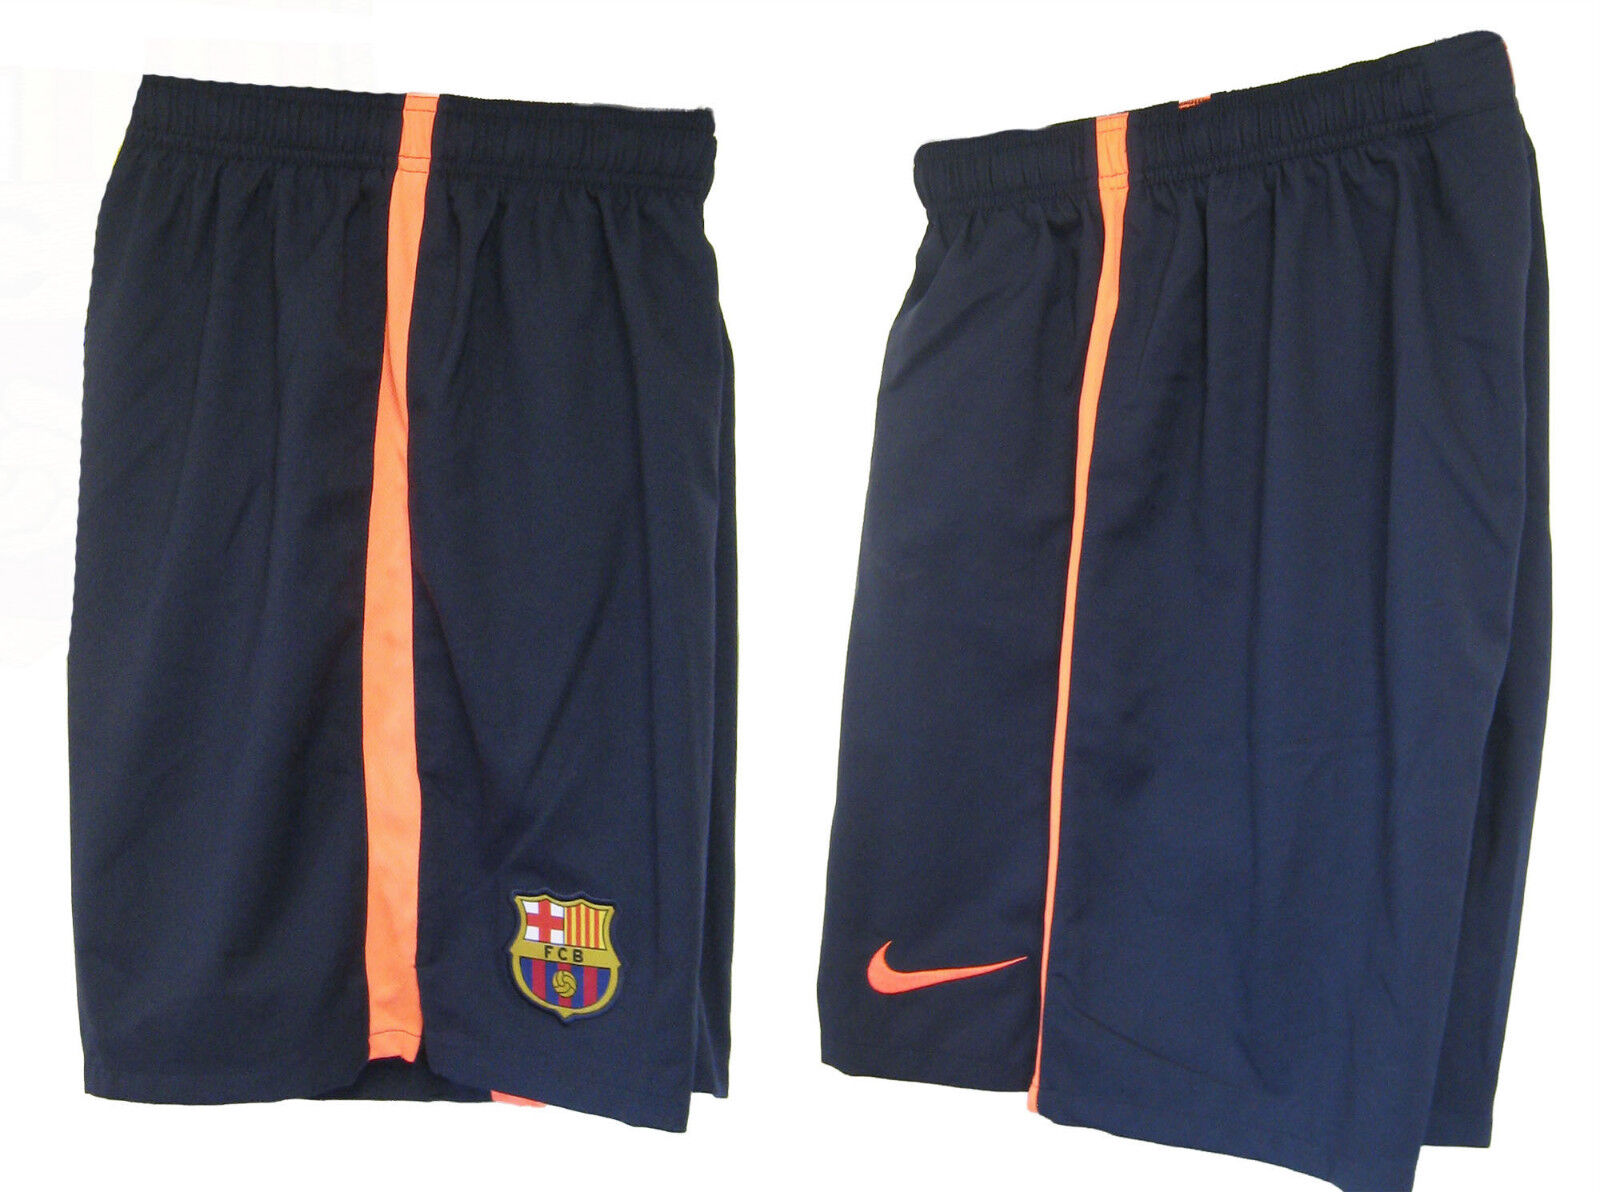 New NIKE BARCELONA Away Football Shorts NBP Youth Boys Girls XL Age 13-15 years